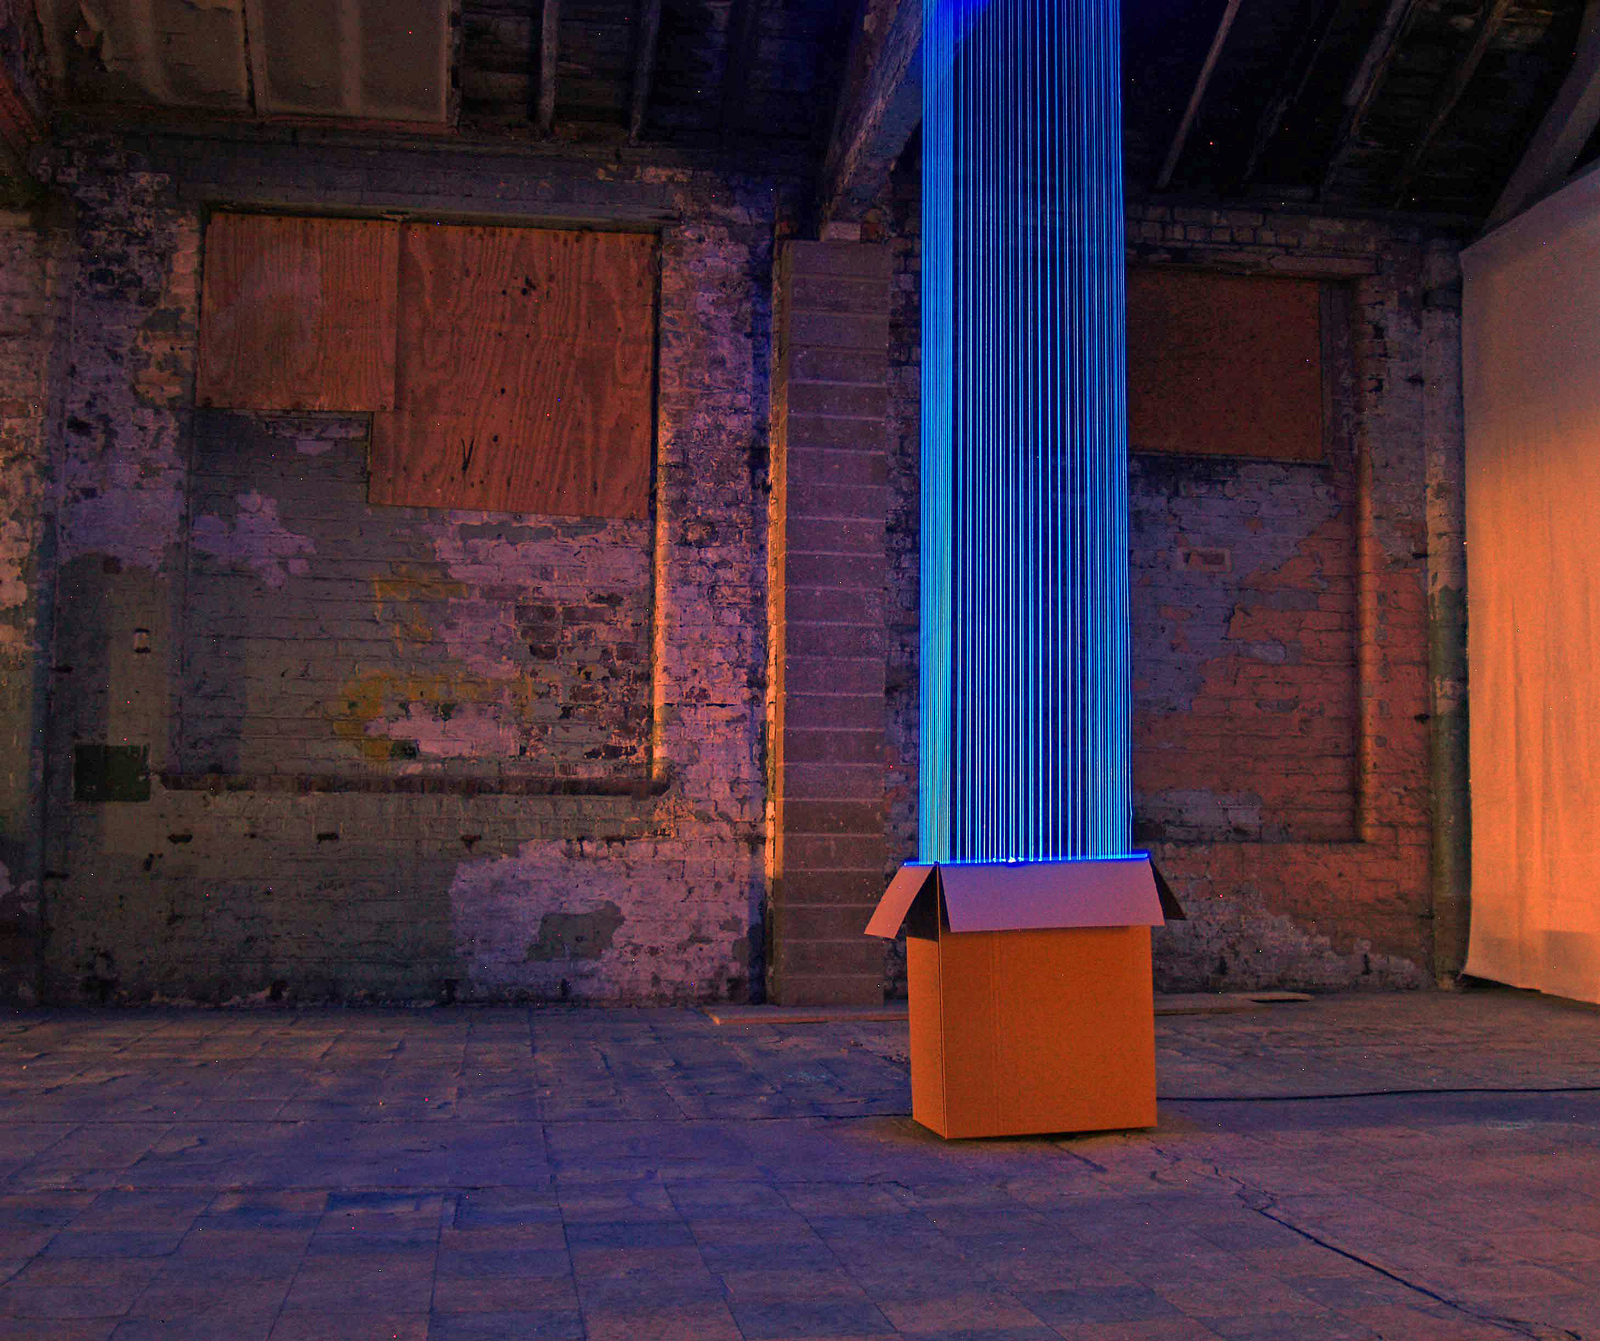 08004 | David Ogle, 2011 | fluorescent fishing line, ultraviolet light, cardboard box | installation view: Soaptank Studios, Warrington | image: courtesy of the artist